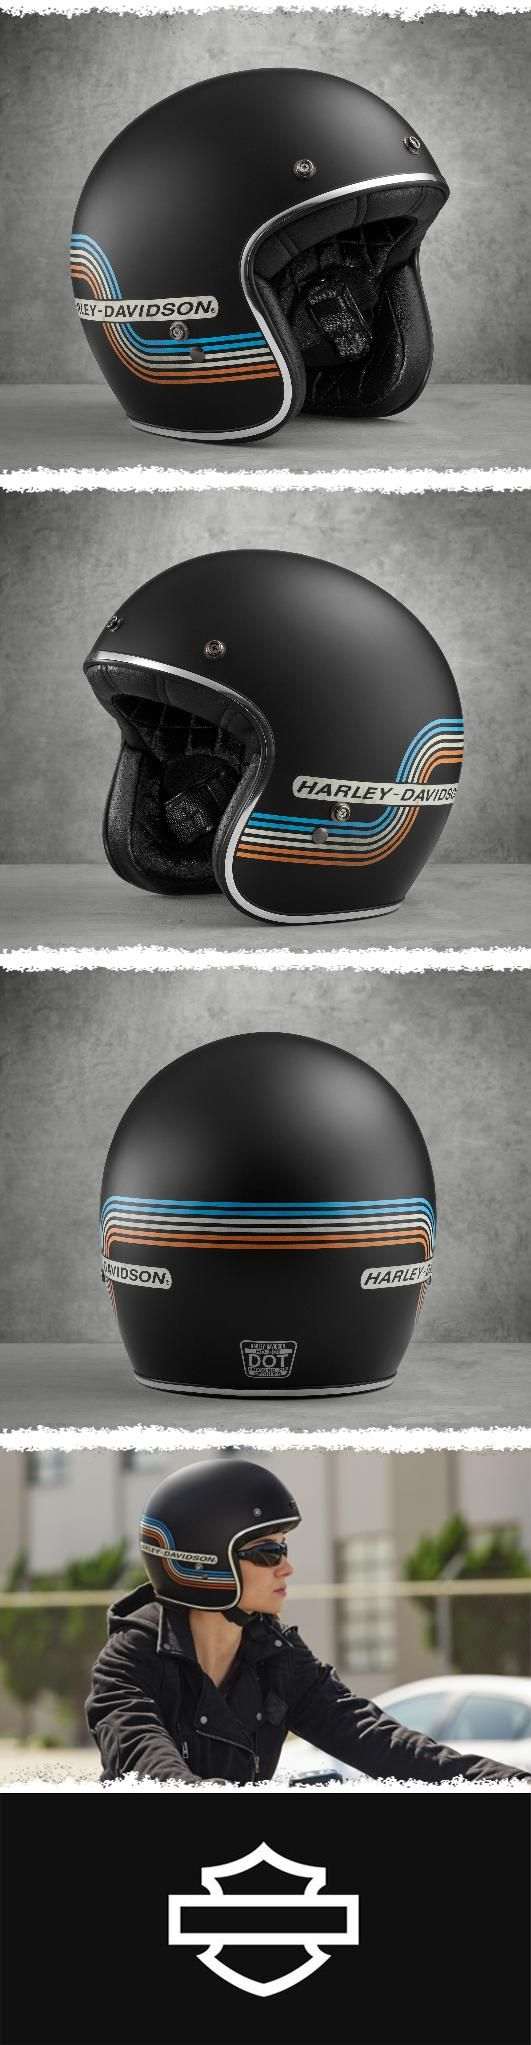 The look is old school, but the fit is contemporary thanks to a low-profile silhouette (no bobble heads!). | Harley-Davidson Retro Tank Stripe B01 3/4 Helmet